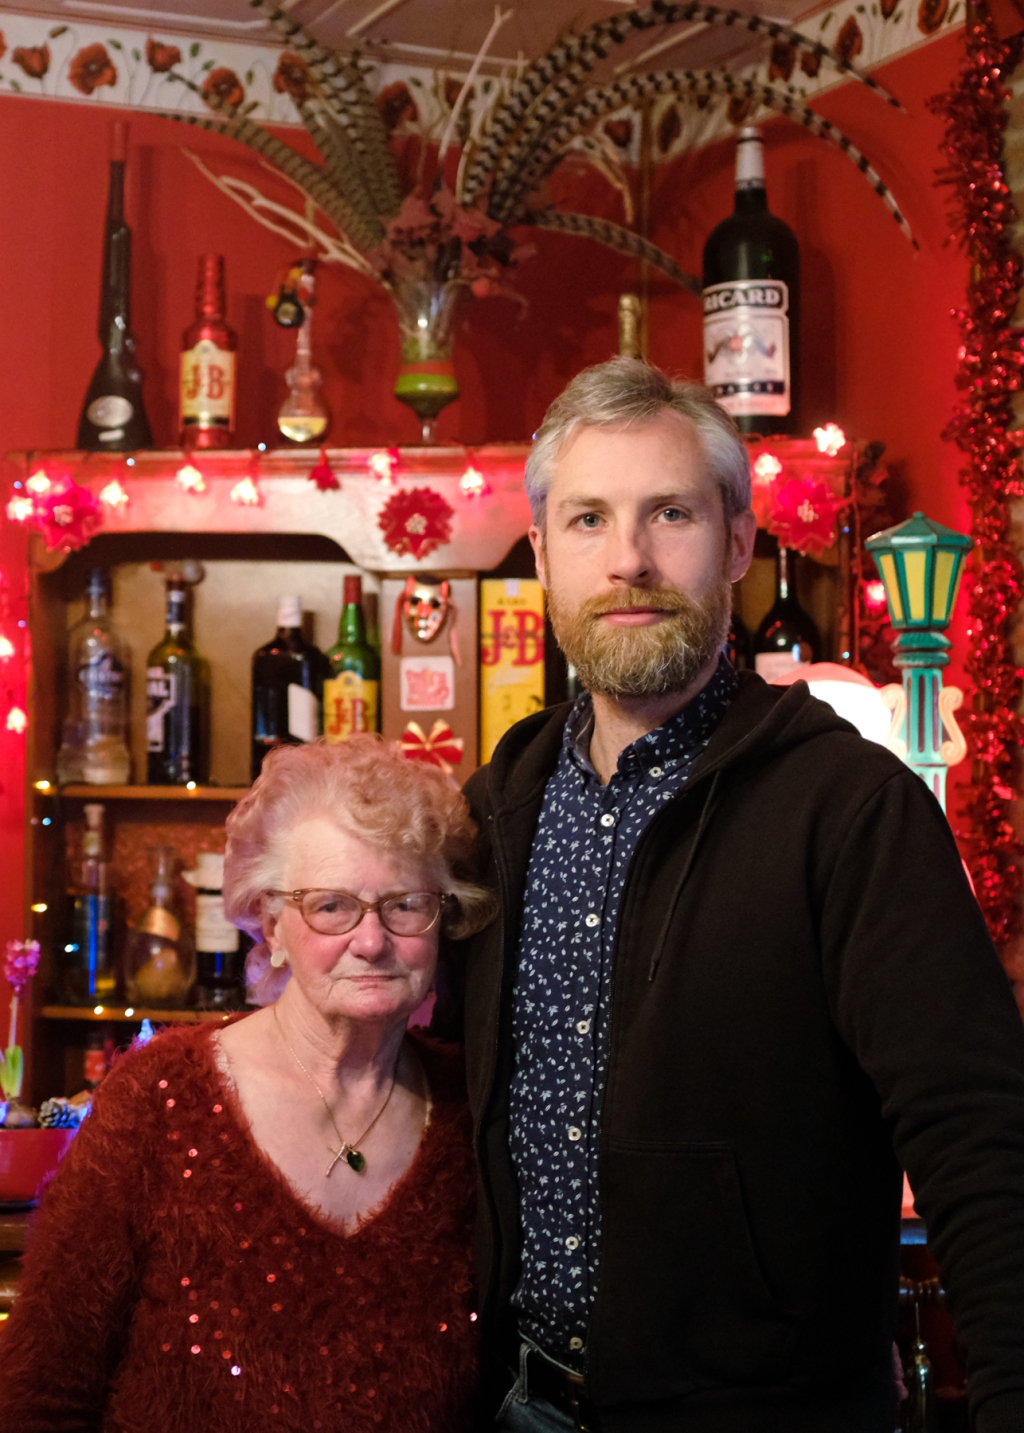 A man and elderly woman post in front of a red living room